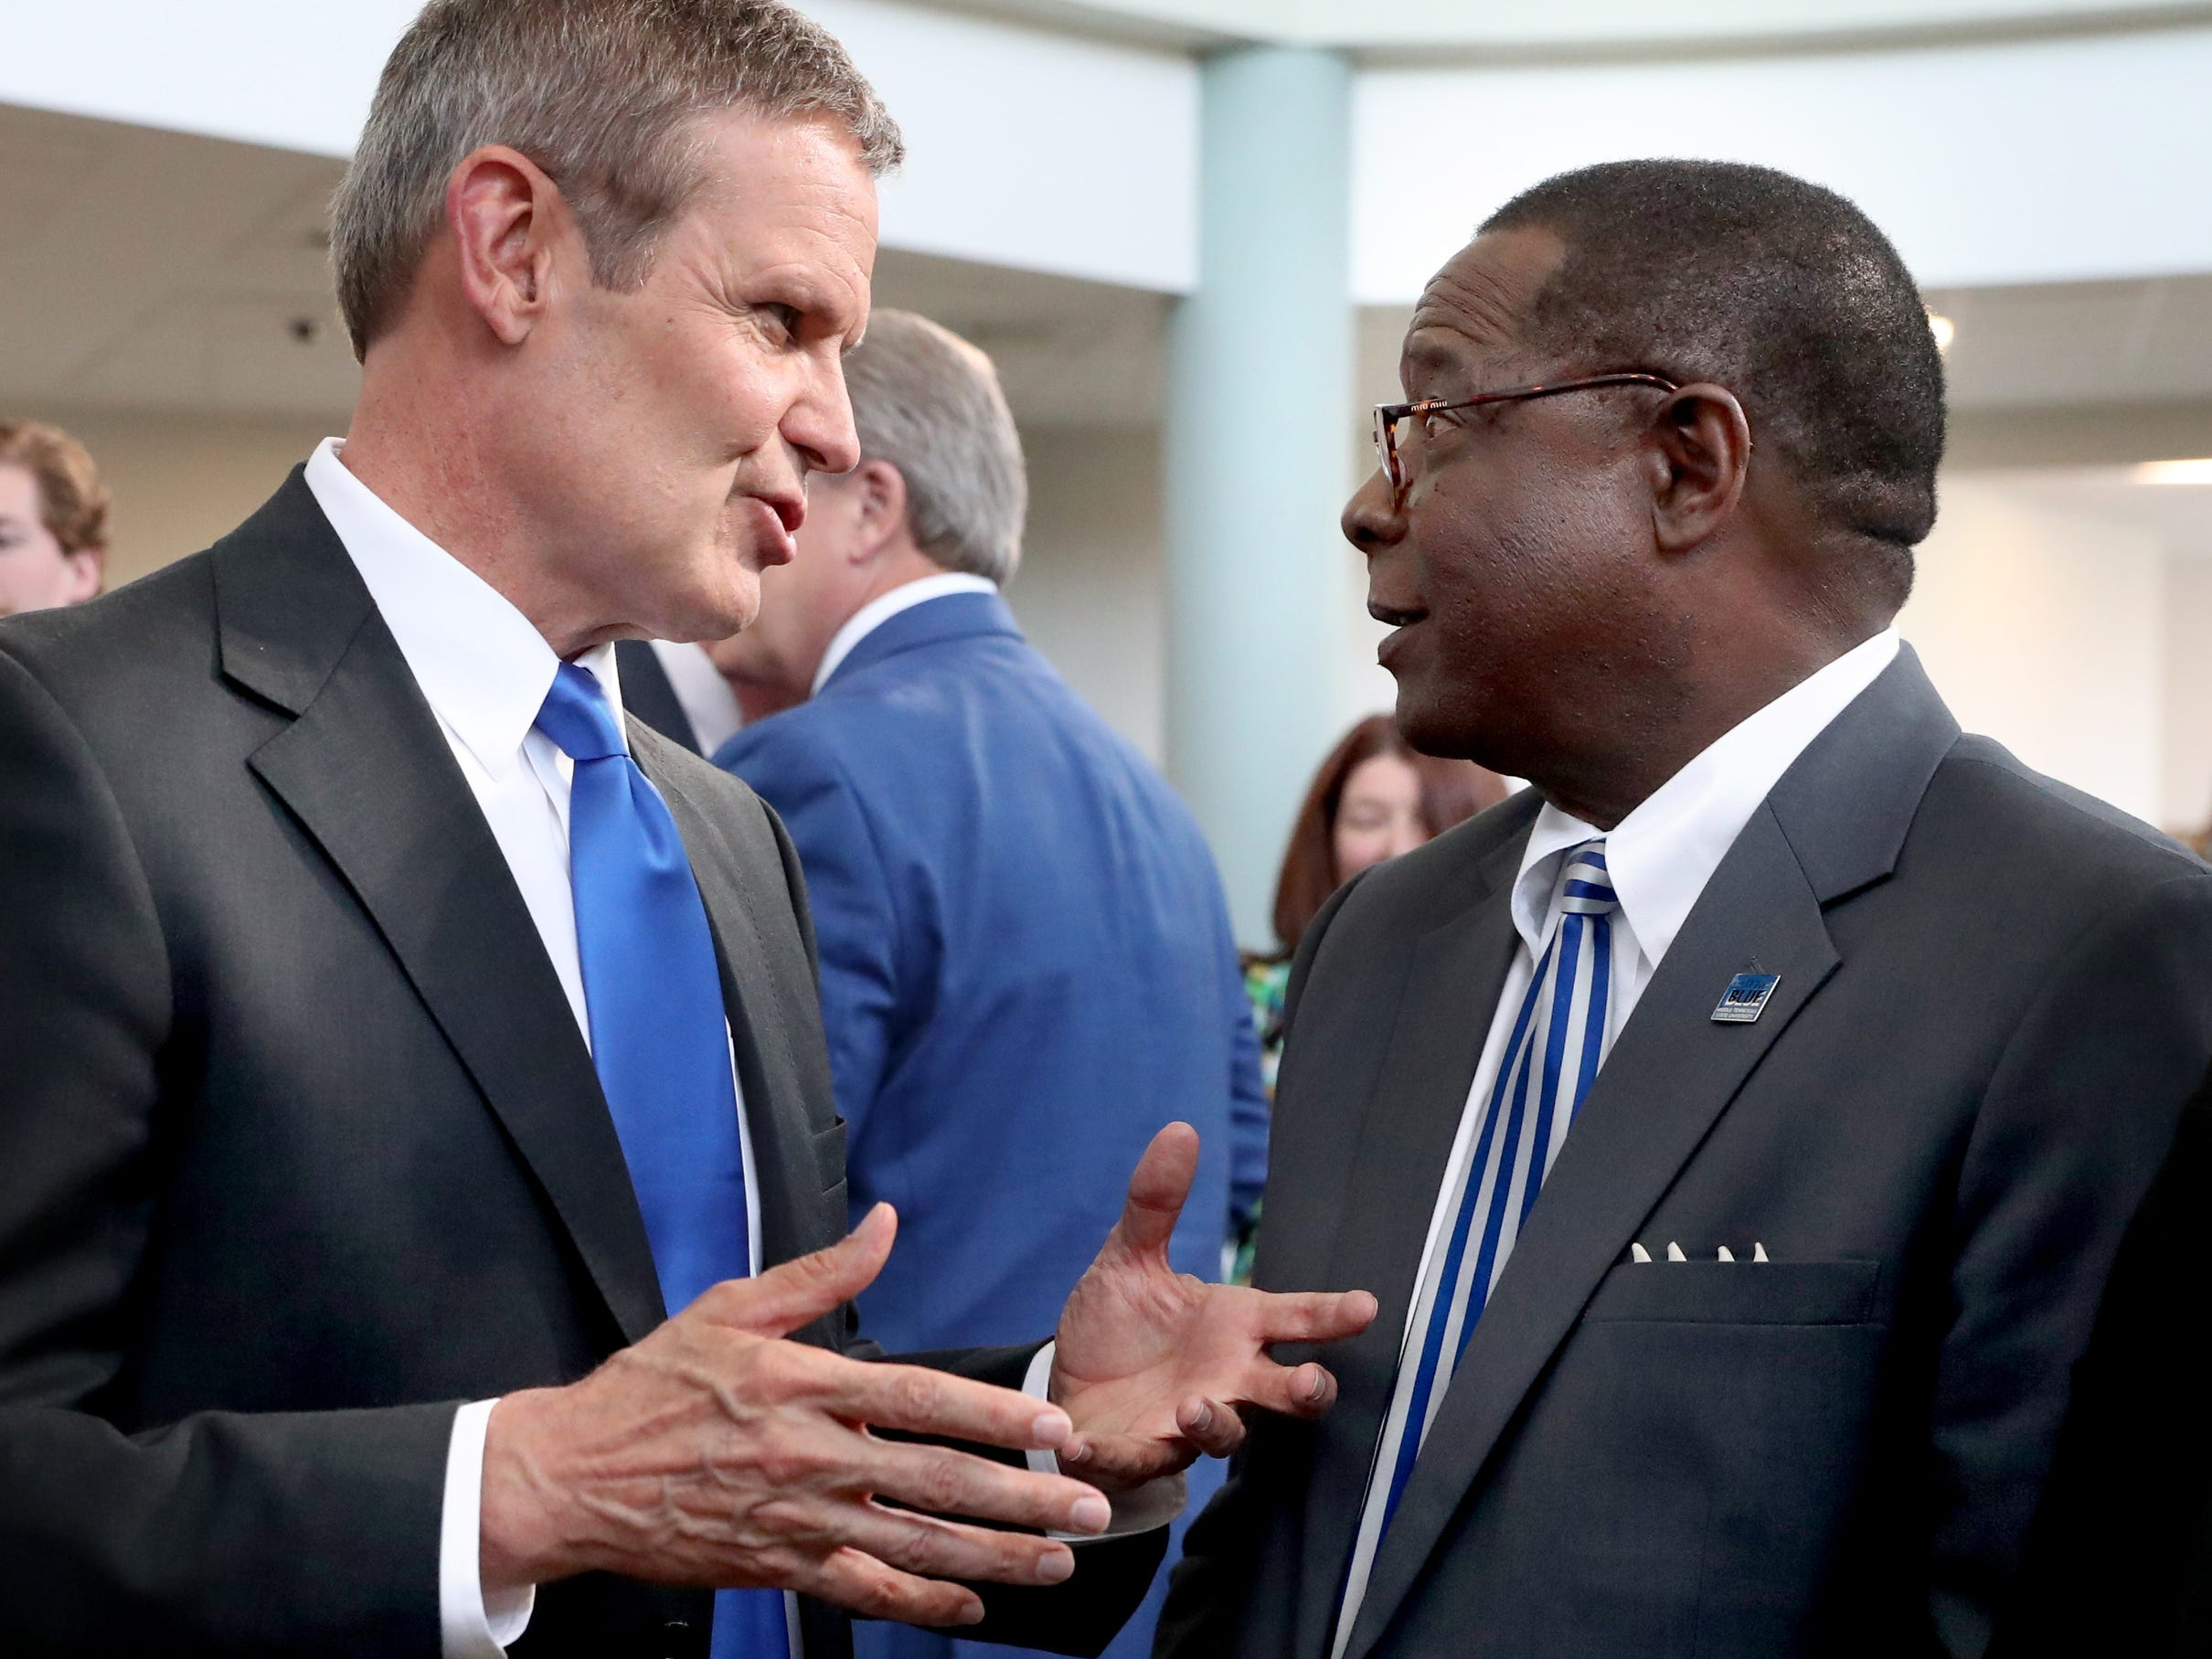 Tennessee Governor Bill Lee, left speaks with MTSU President Sidney McPhee after the Governor spoke at MTSU's program recognizing the Siemens' grant to MTSU's Mechatronics Engineering program, on Wednesday April 3, 2019.